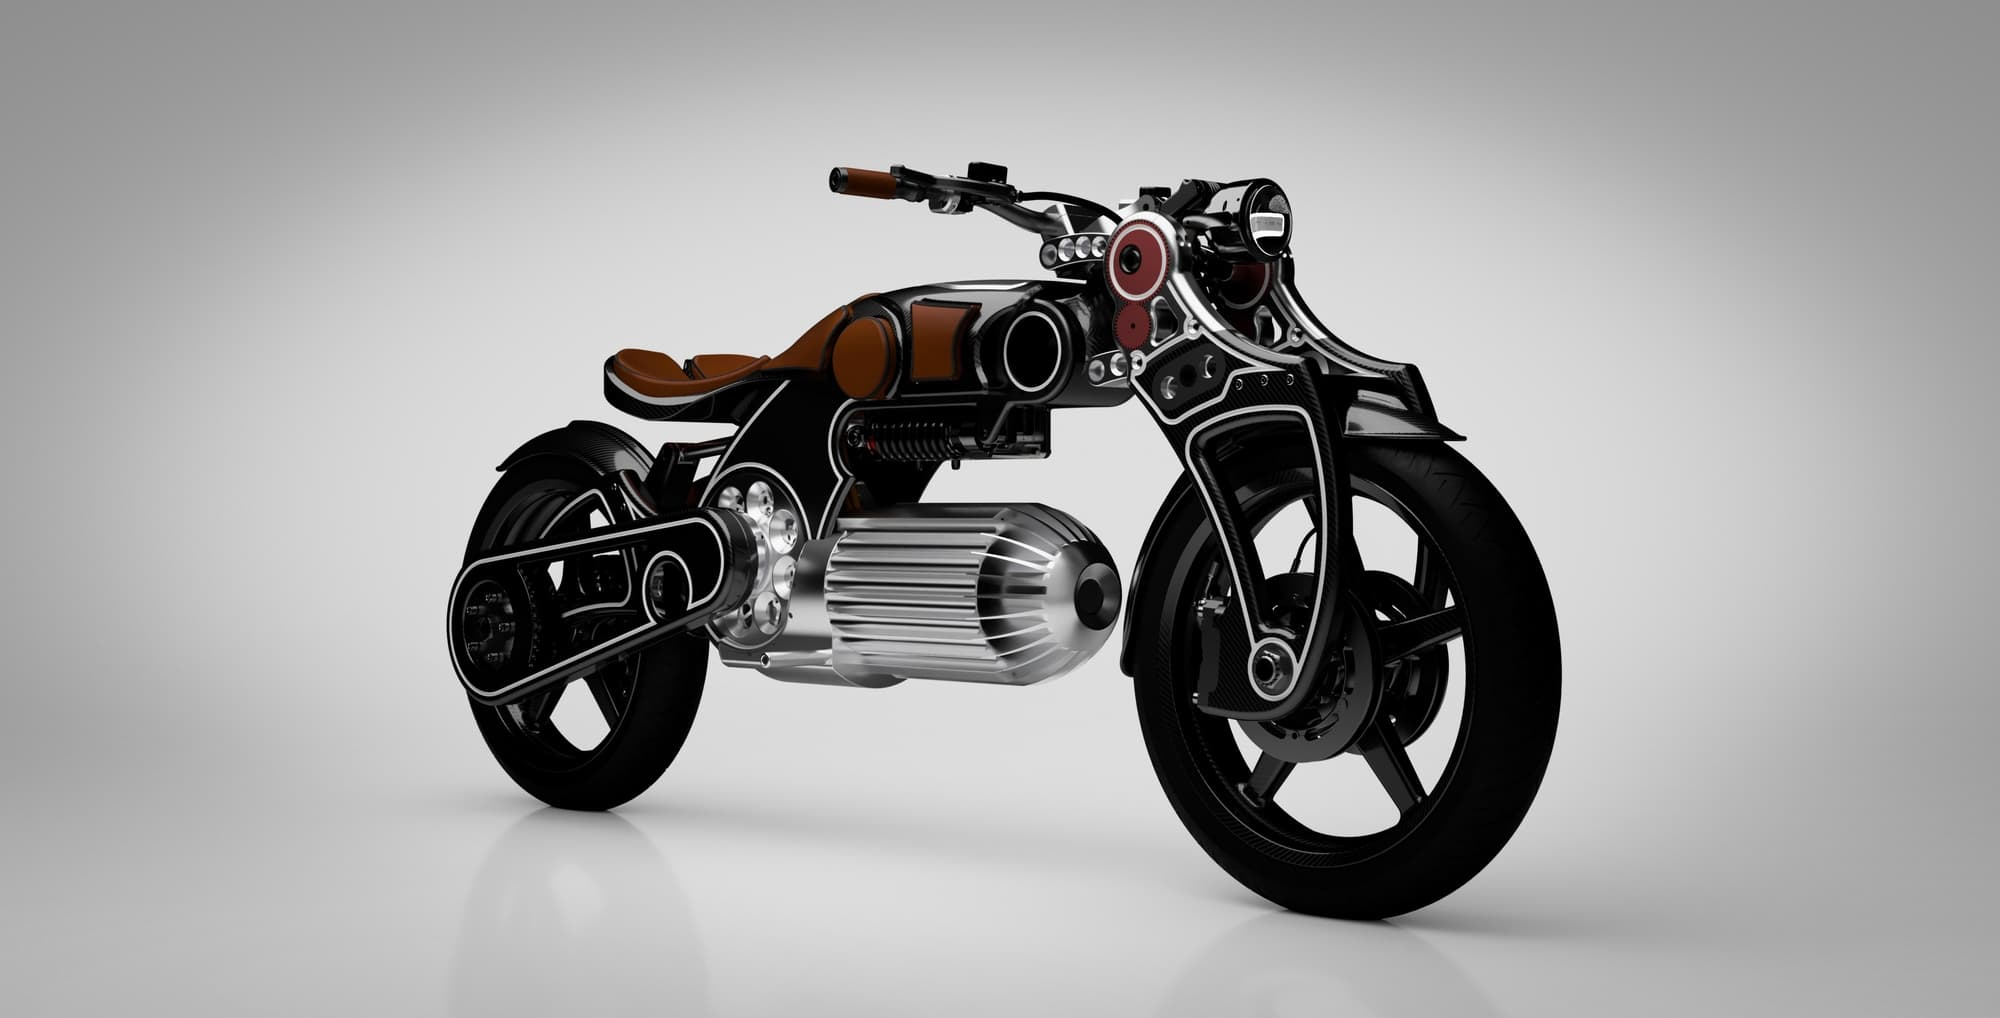 Curtiss Hades Electric Motorcycle is Designed by Nesbitt